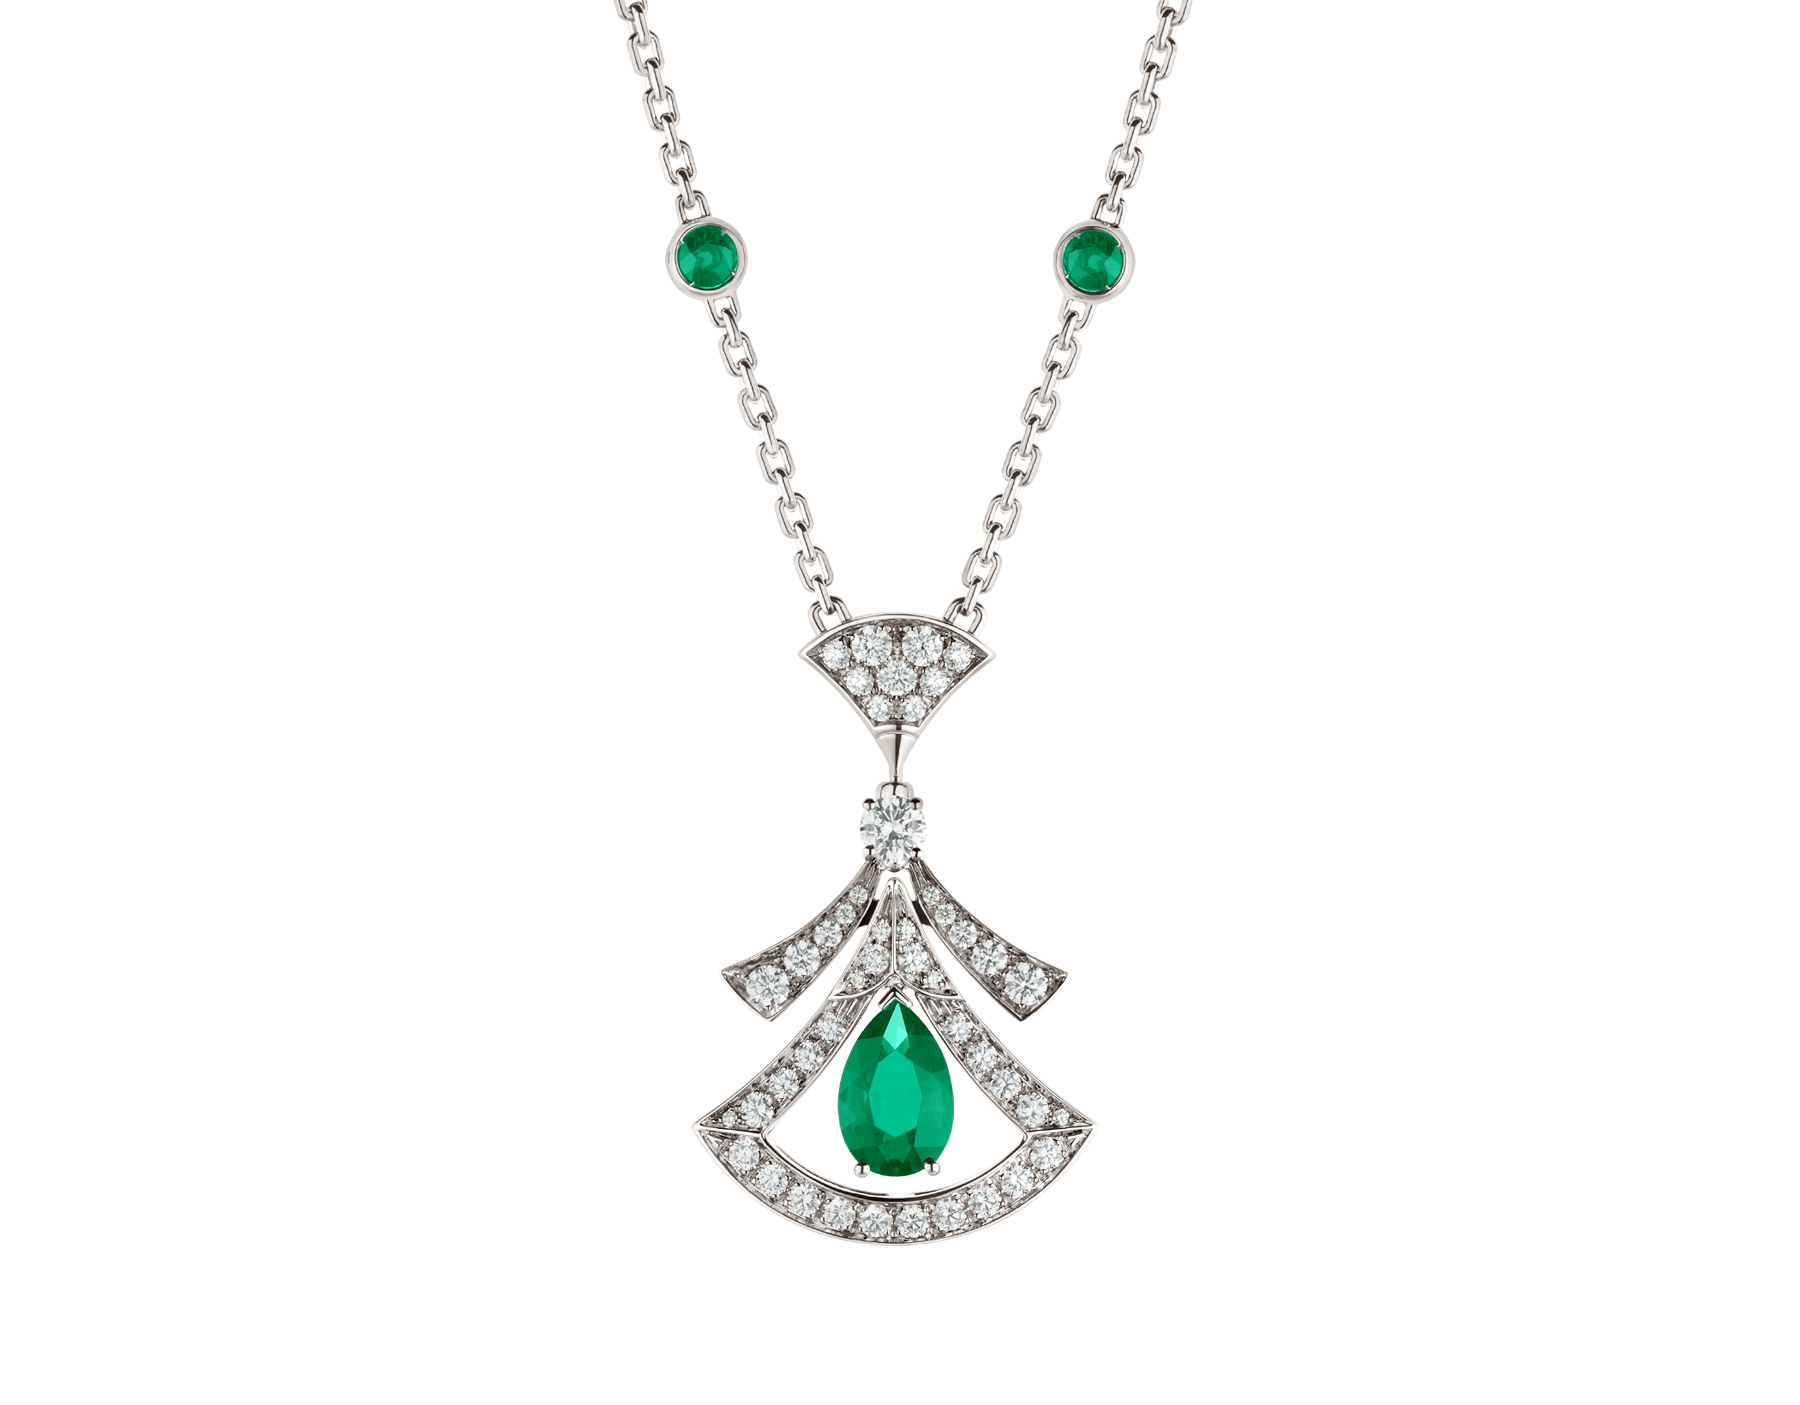 Collier ajouré DIVAS' DREAM en or blanc 18 K serti d'une émeraude taille poire (1,17 ct), émeraudes rondes taille brillant (0,60 ct), un diamant rond taille brillant et pavé diamants (0,86 ct) 356955 image 1